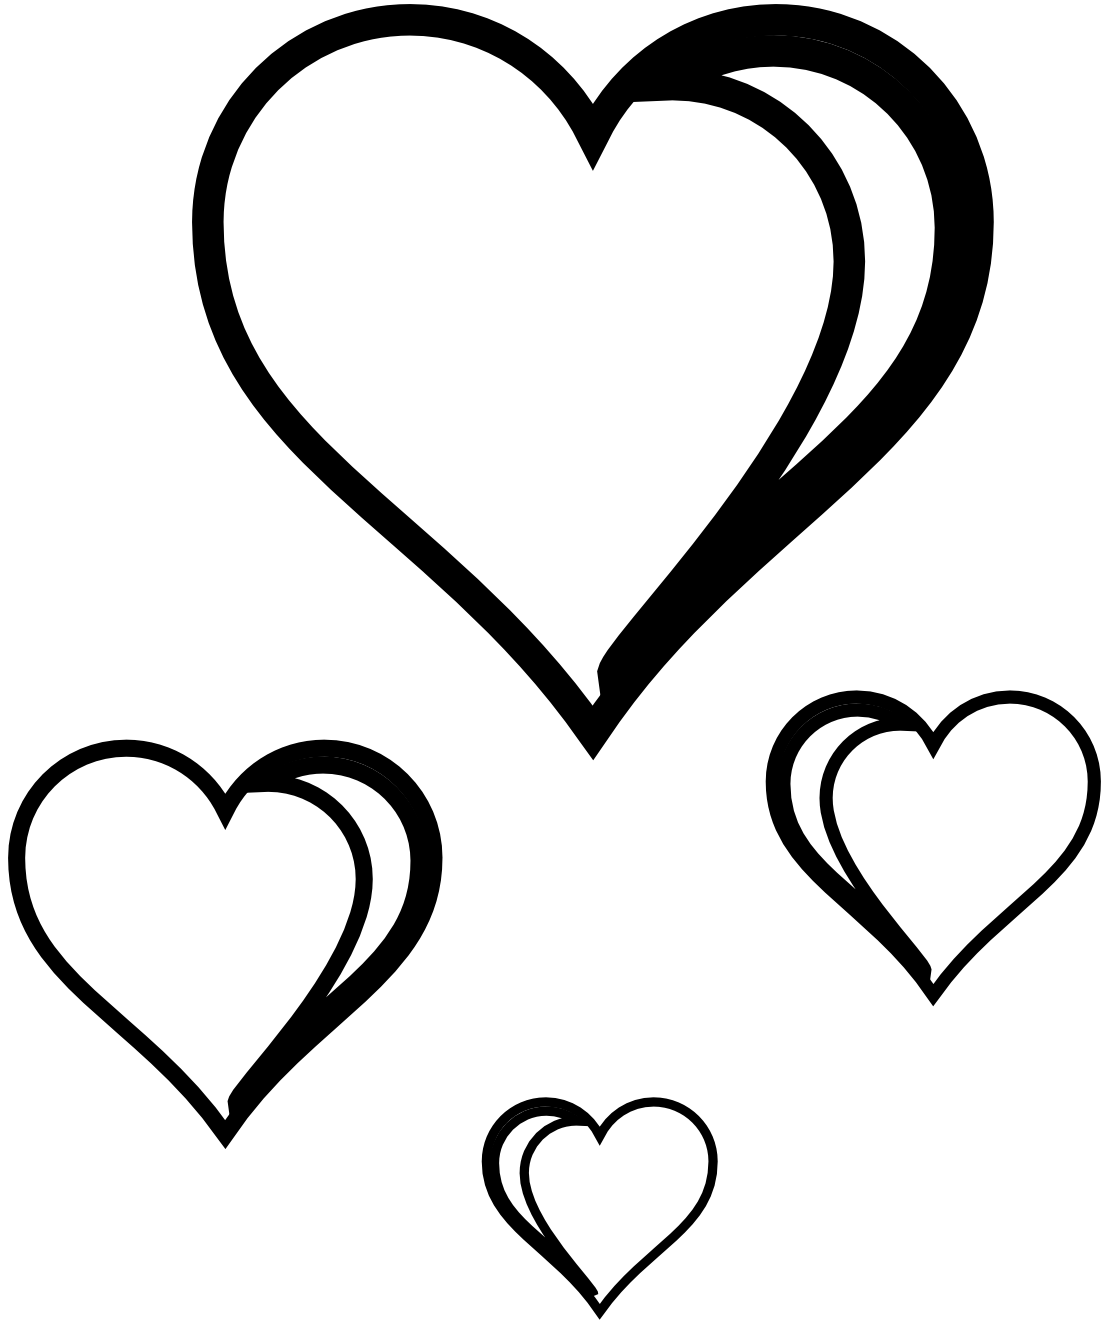 Happy heart clipart black and white clip black and white stock Cute Heart Clipart Black And White - ClipArt Best - ClipArt Best clip black and white stock